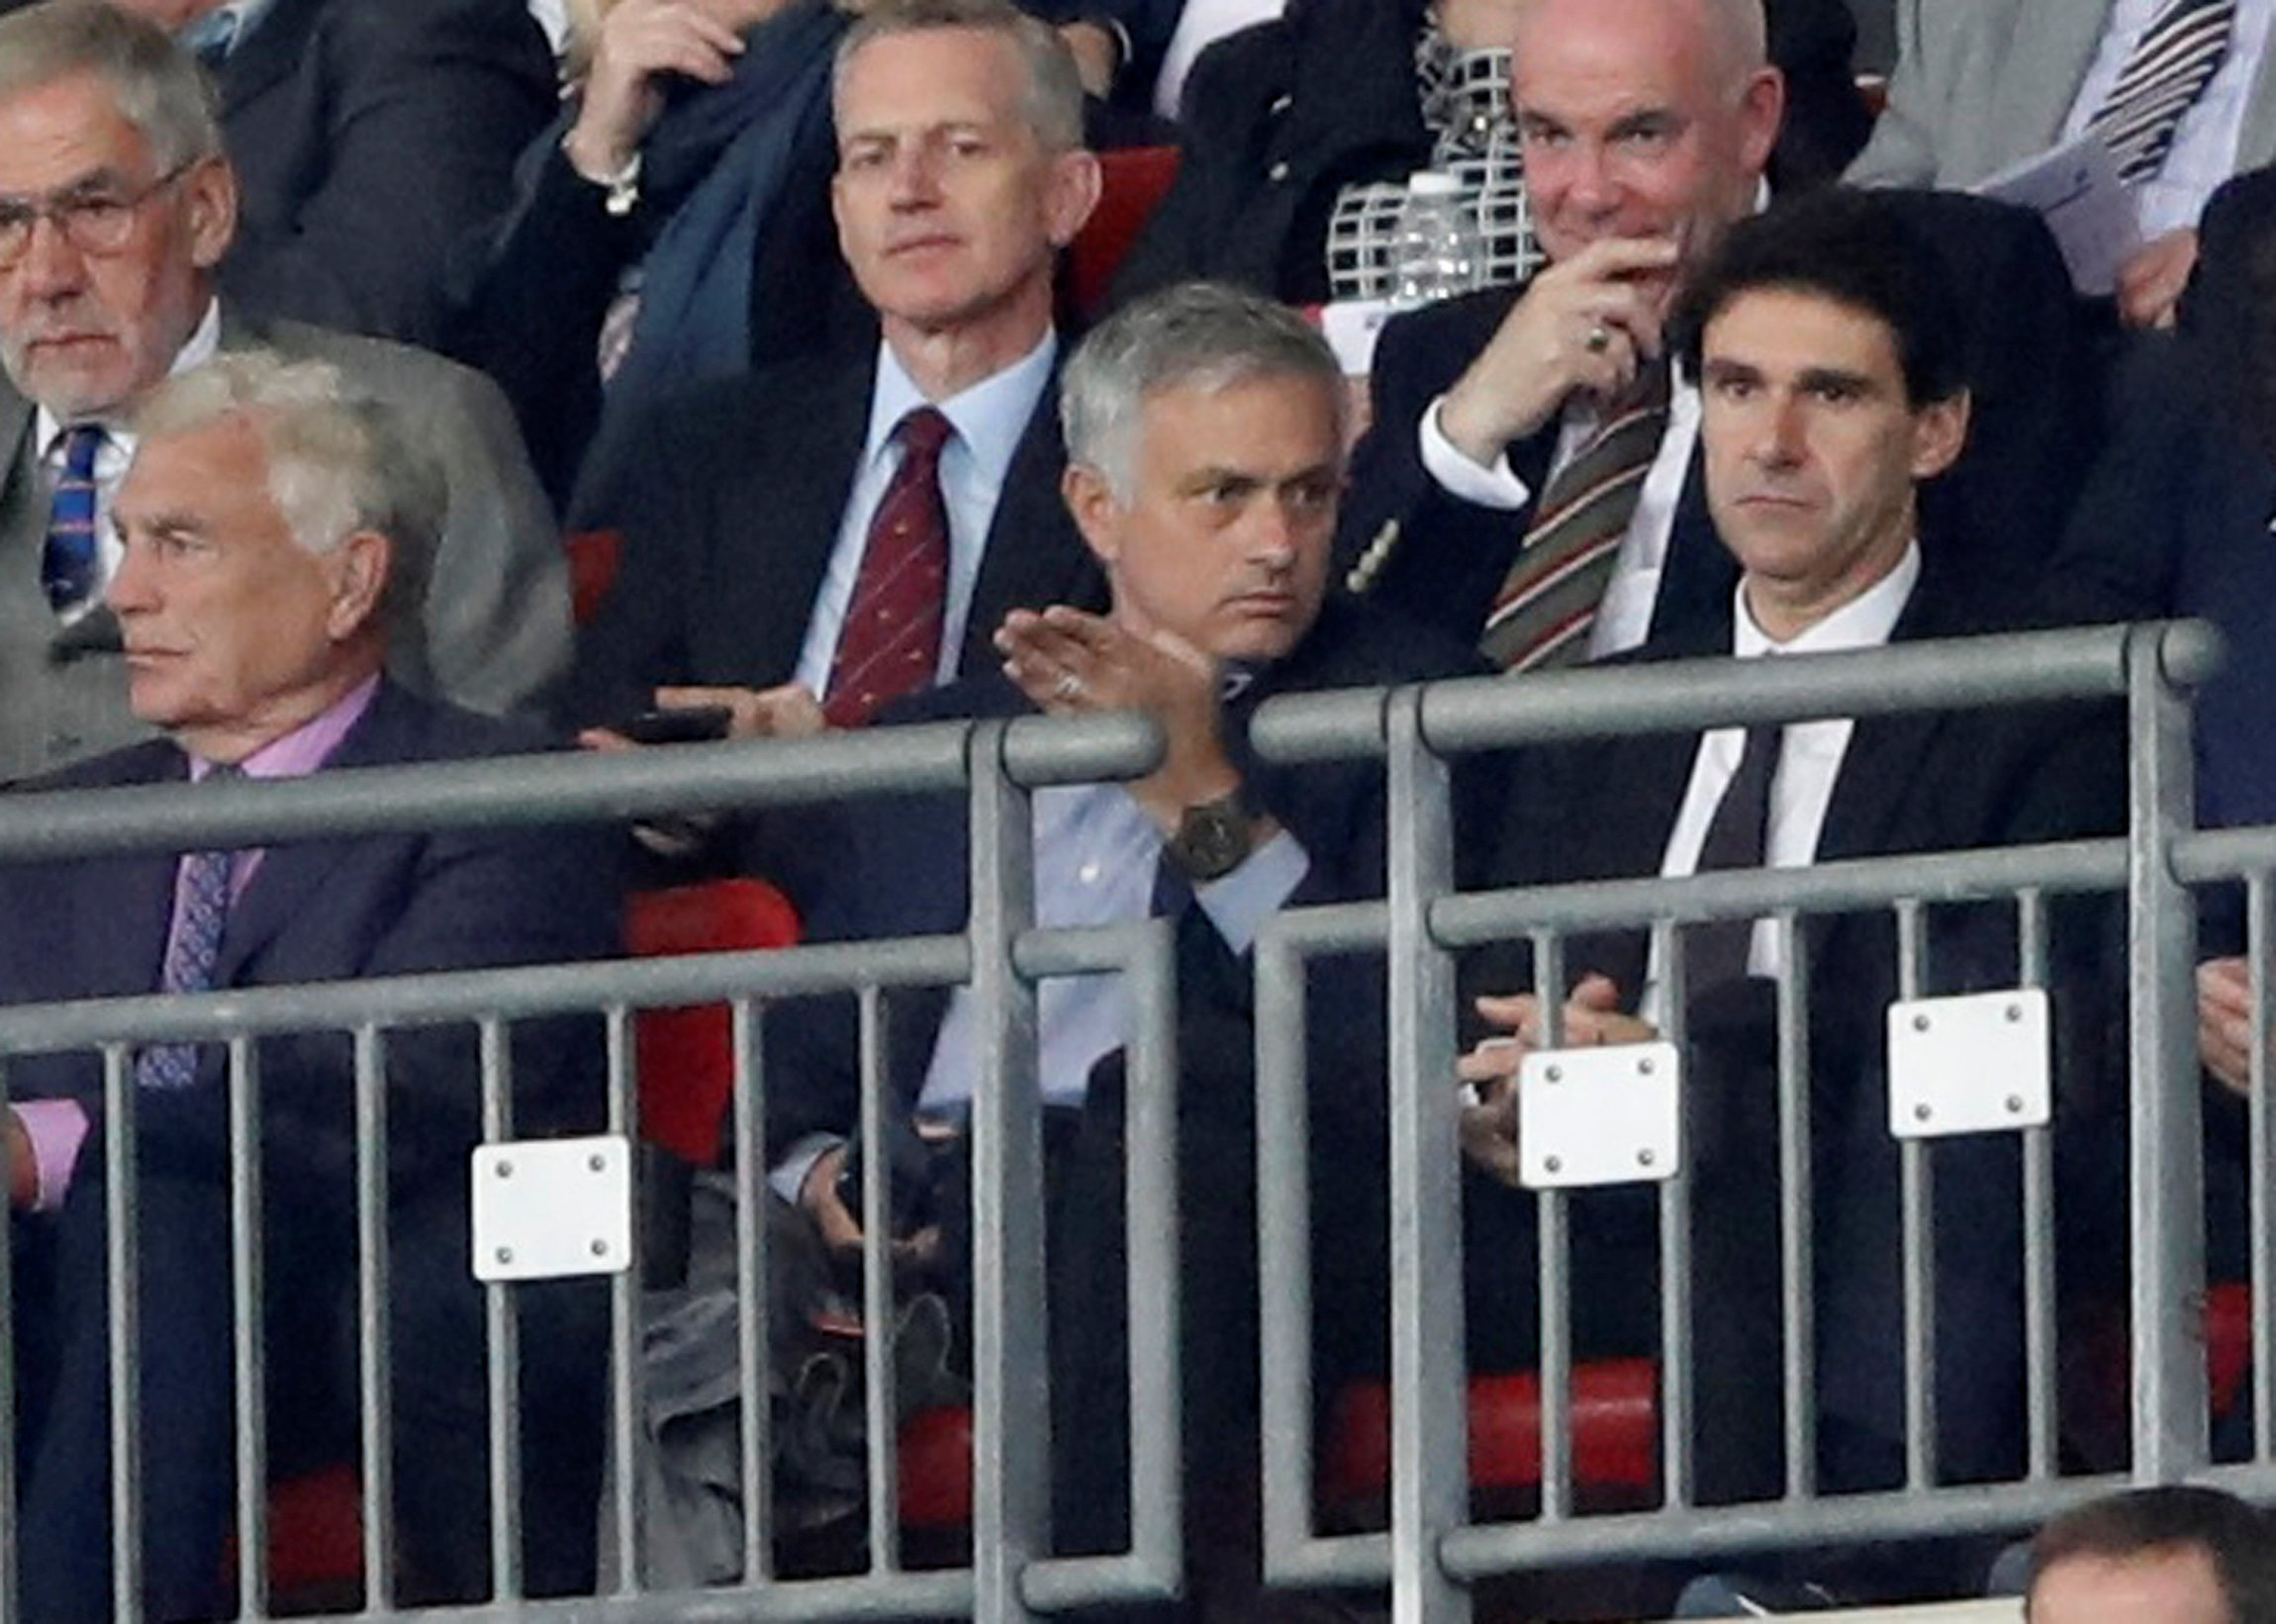 Soccer Football - UEFA Nations League - League A - Group 4 - England v Spain - Wembley Stadium, London, Britain - September 8, 2018 Sir Trevor Brooking, Manchester United manager Jose Mourinho and Nottingham Forest manager Aitor Karanka in the stand Action Images via Reuters/Carl Recine